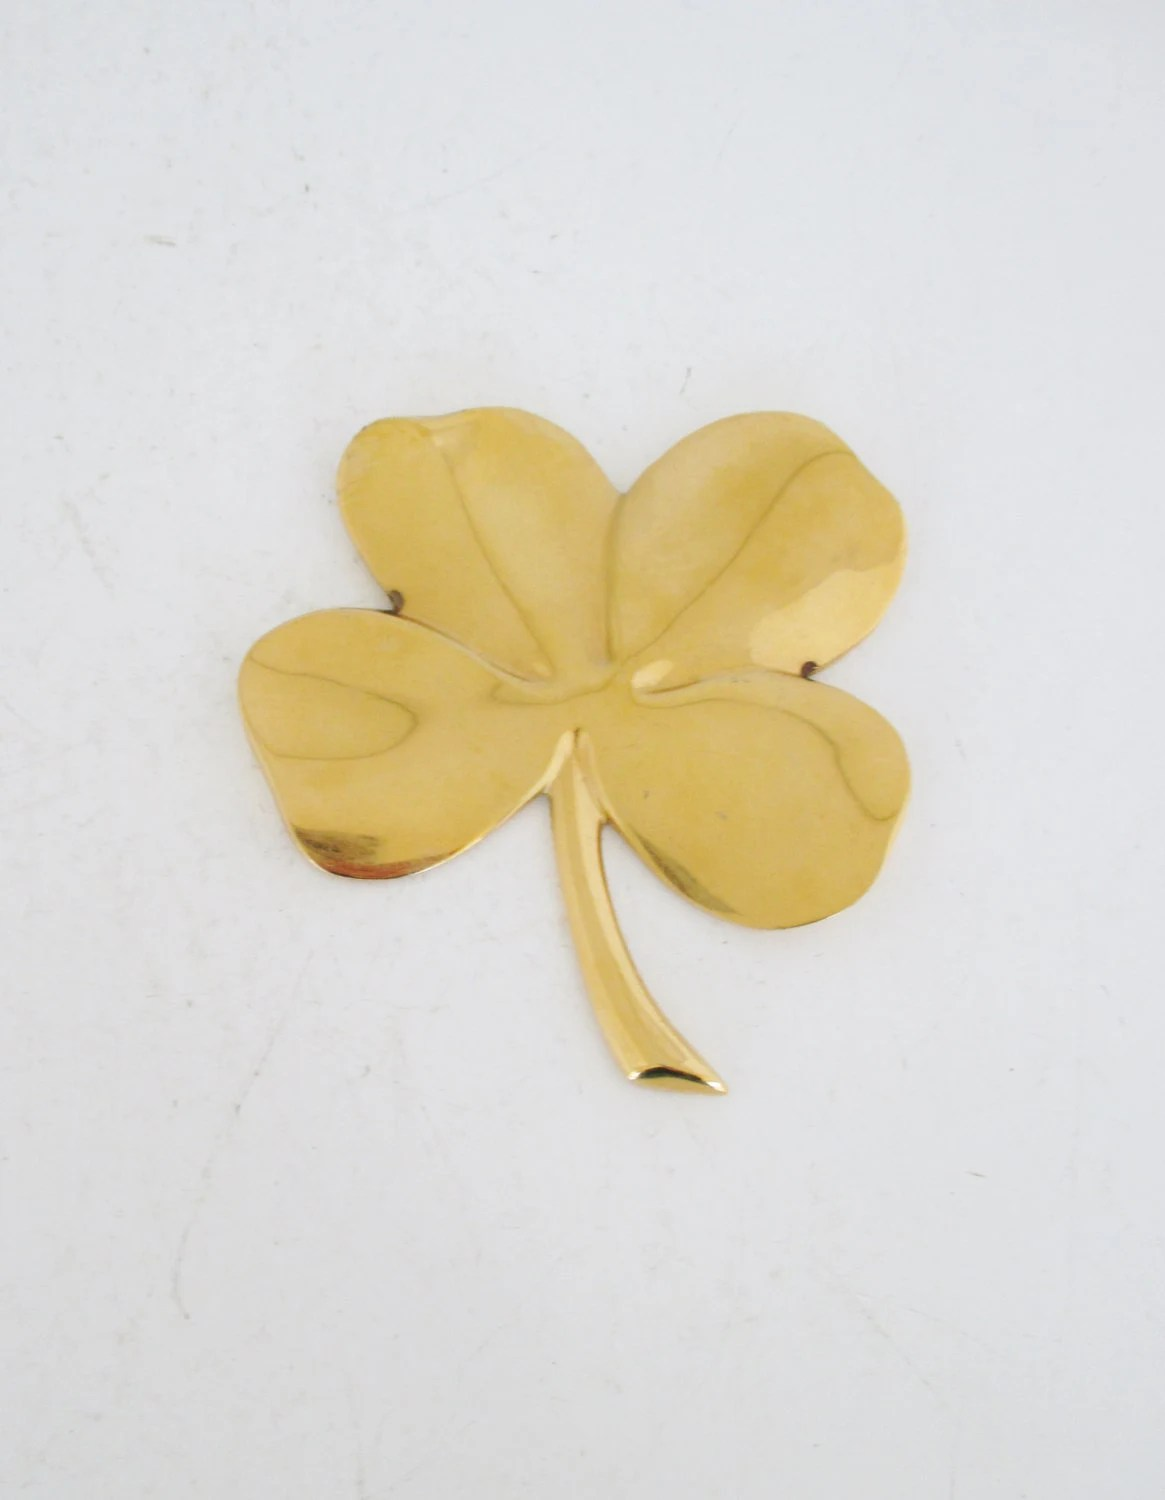 Clover Leaf Luck Good 4